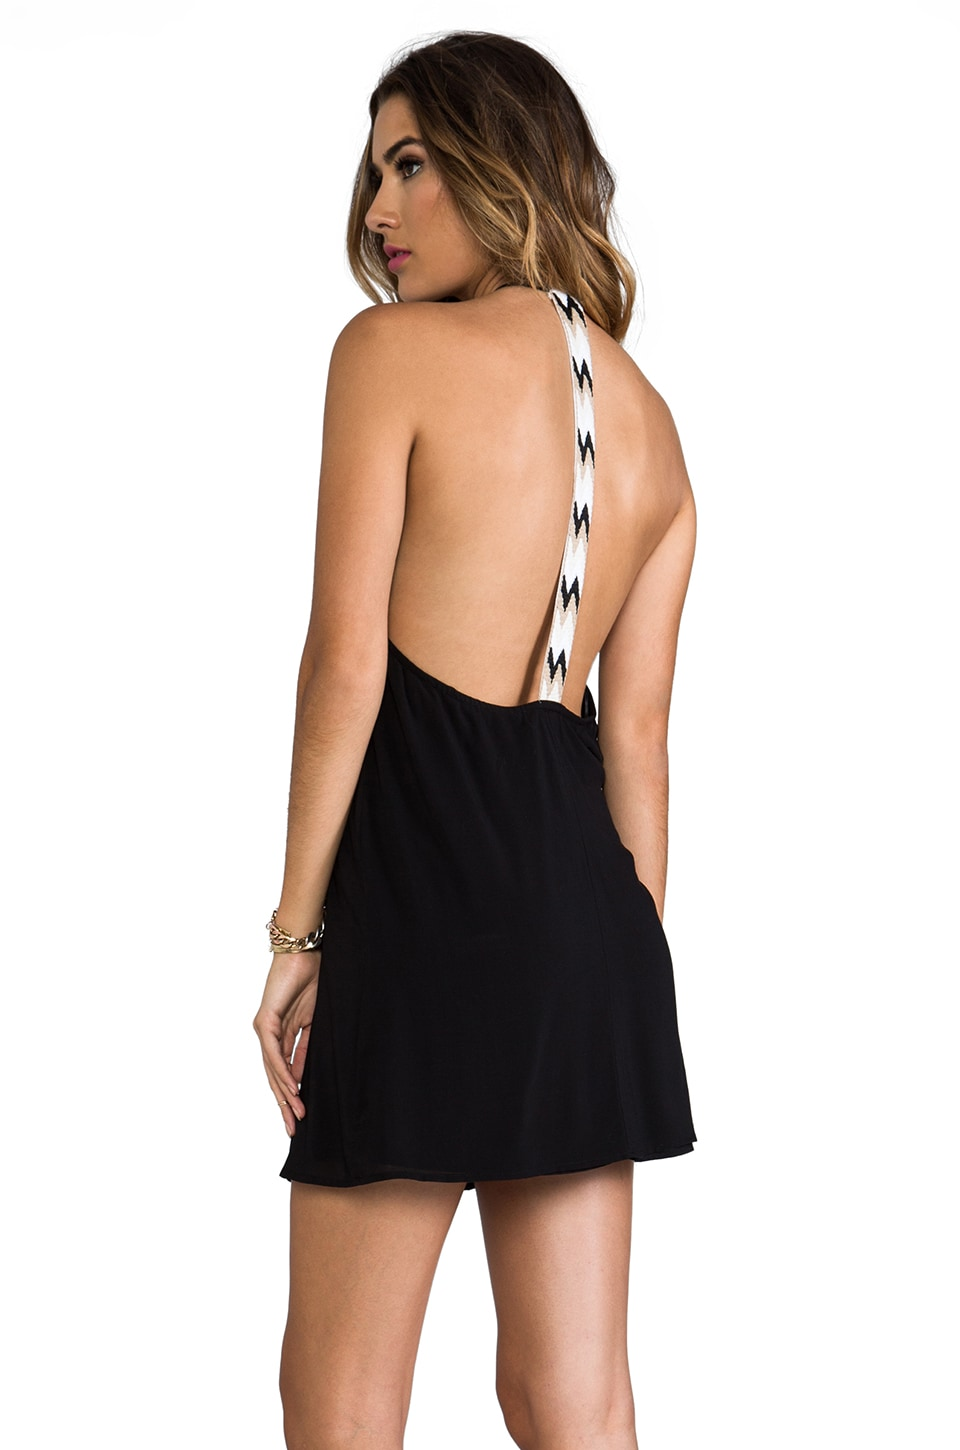 WOODLEIGH Veve Mini Dress in Black